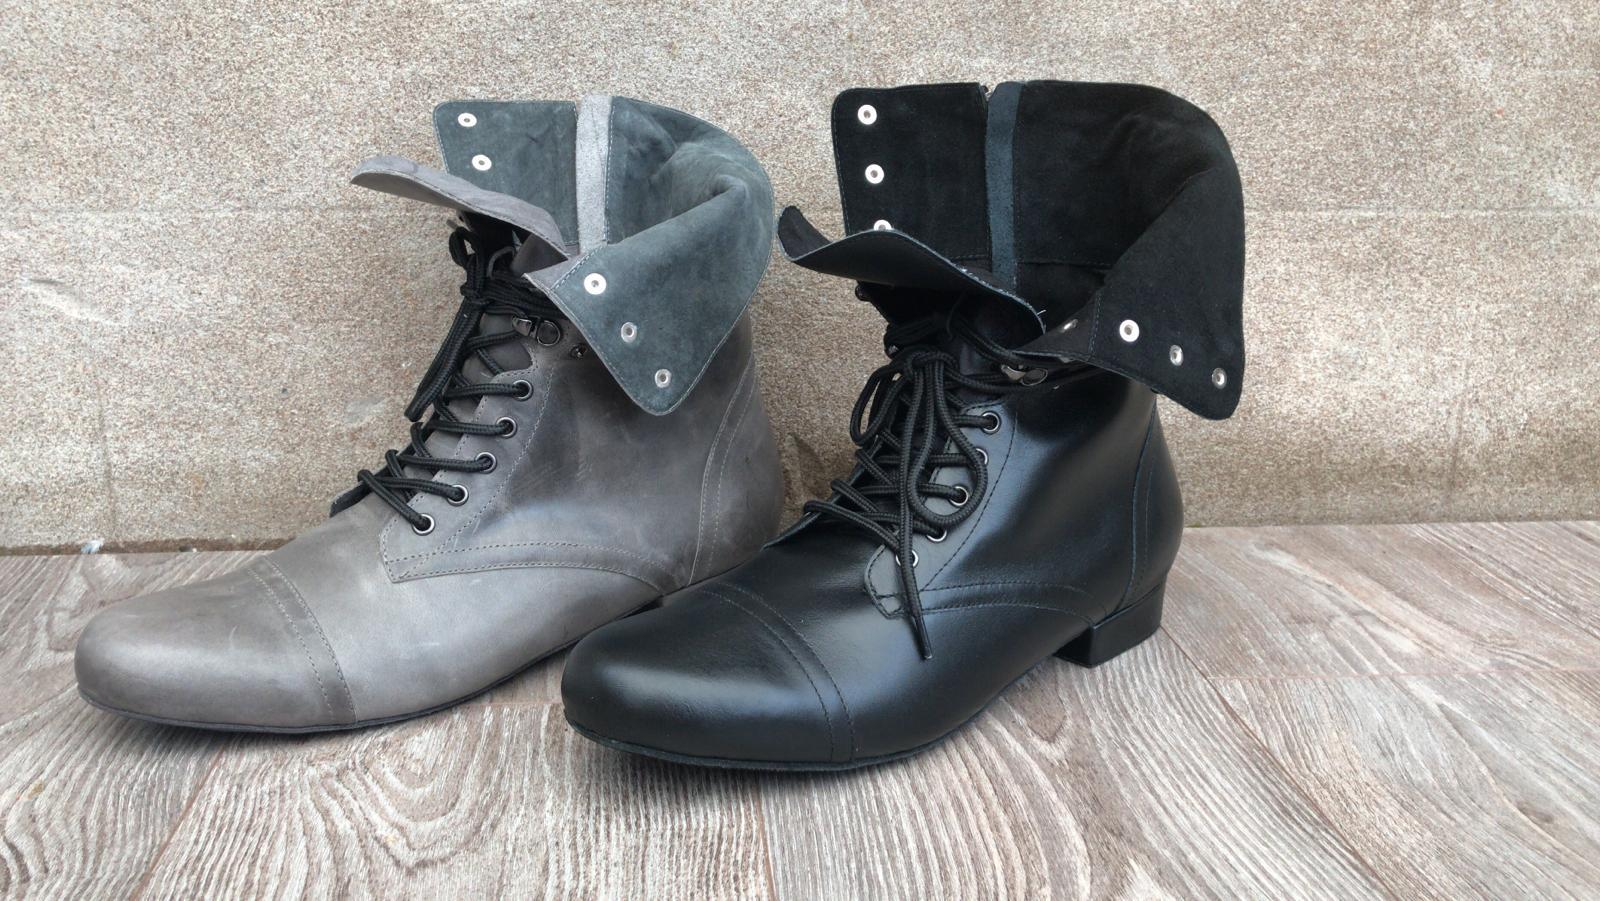 Combat Boots Distressed Grey and Black folded down side by side